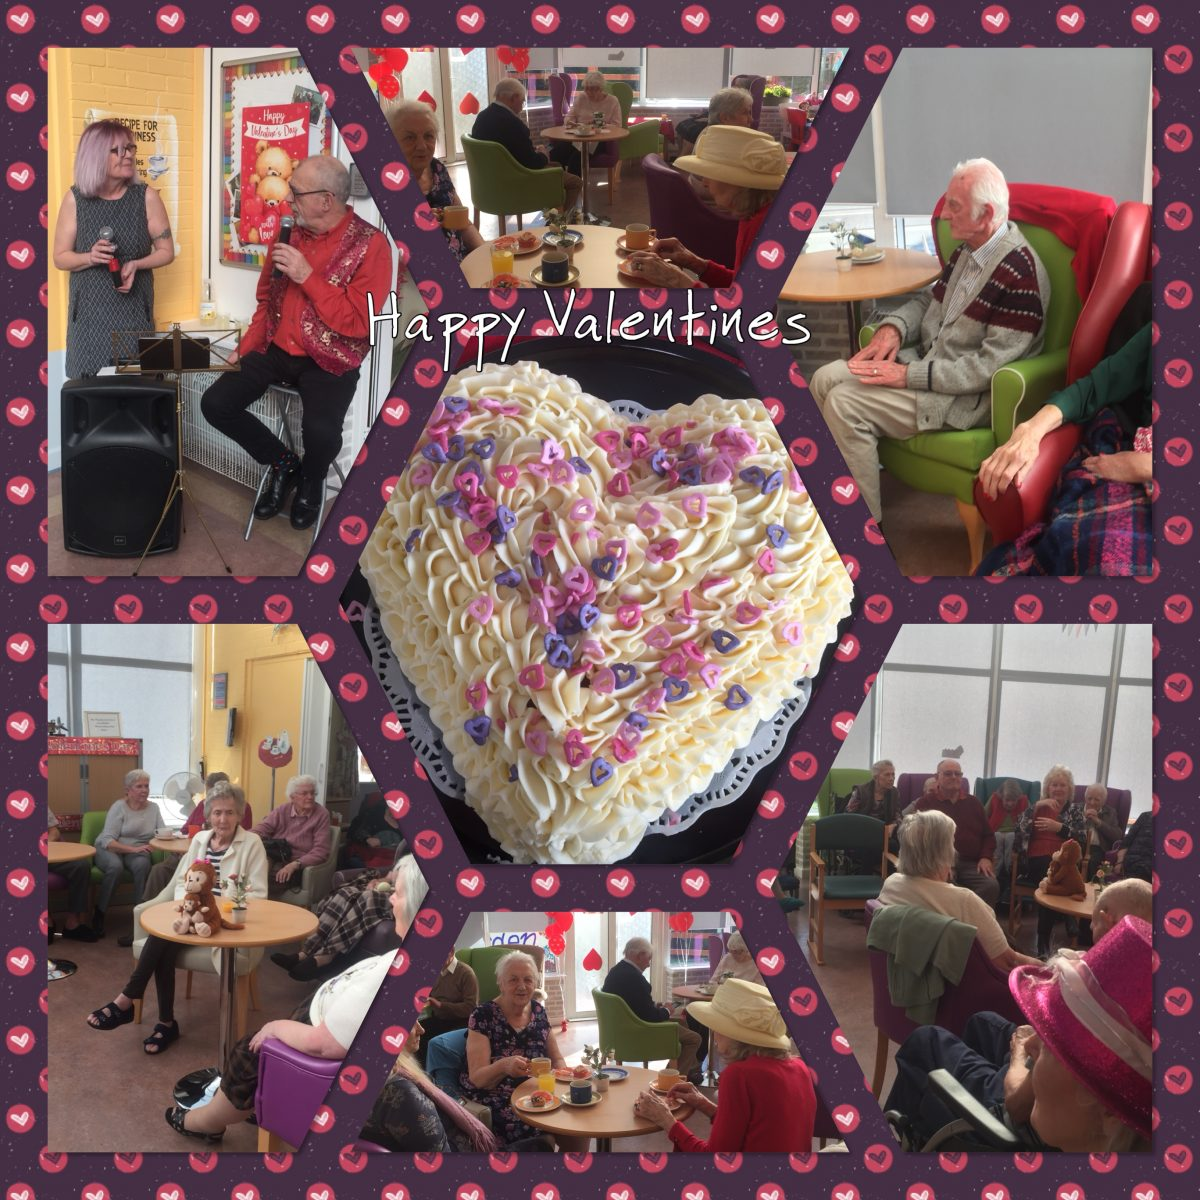 HAPPY VALENTINES DAY CELEBRATIONS FROM BIRCHY HILL